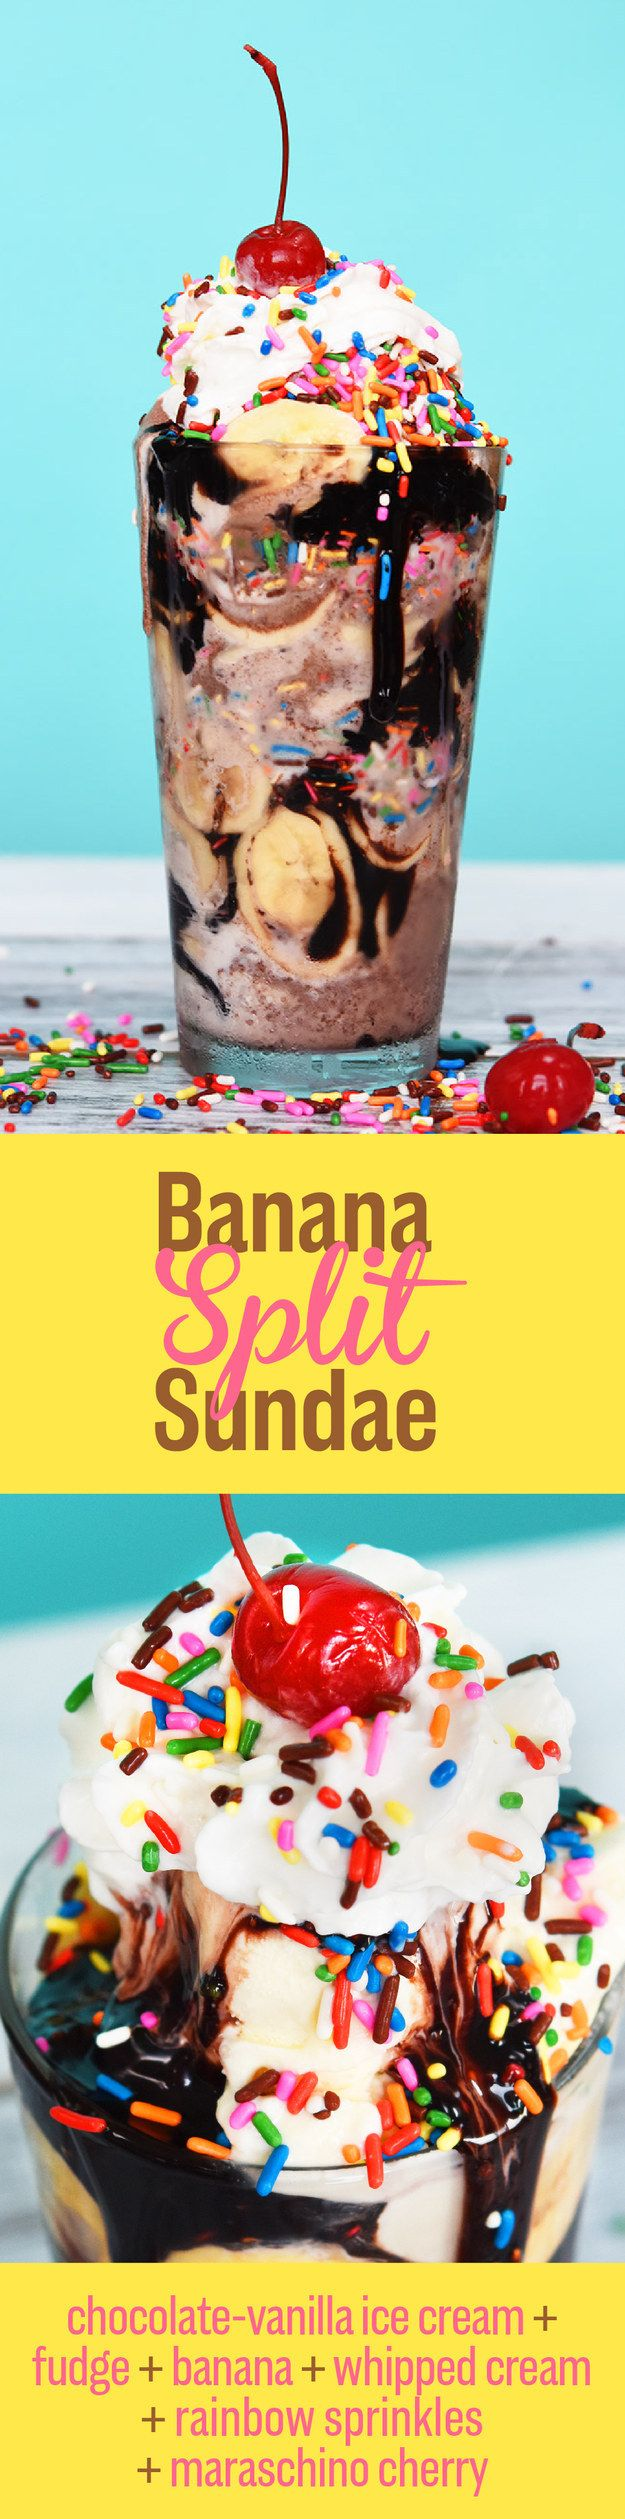 The Banana Split Sundae | 7 Insanely Delicious Sundaes You Need To Eat Before Summer Is Over